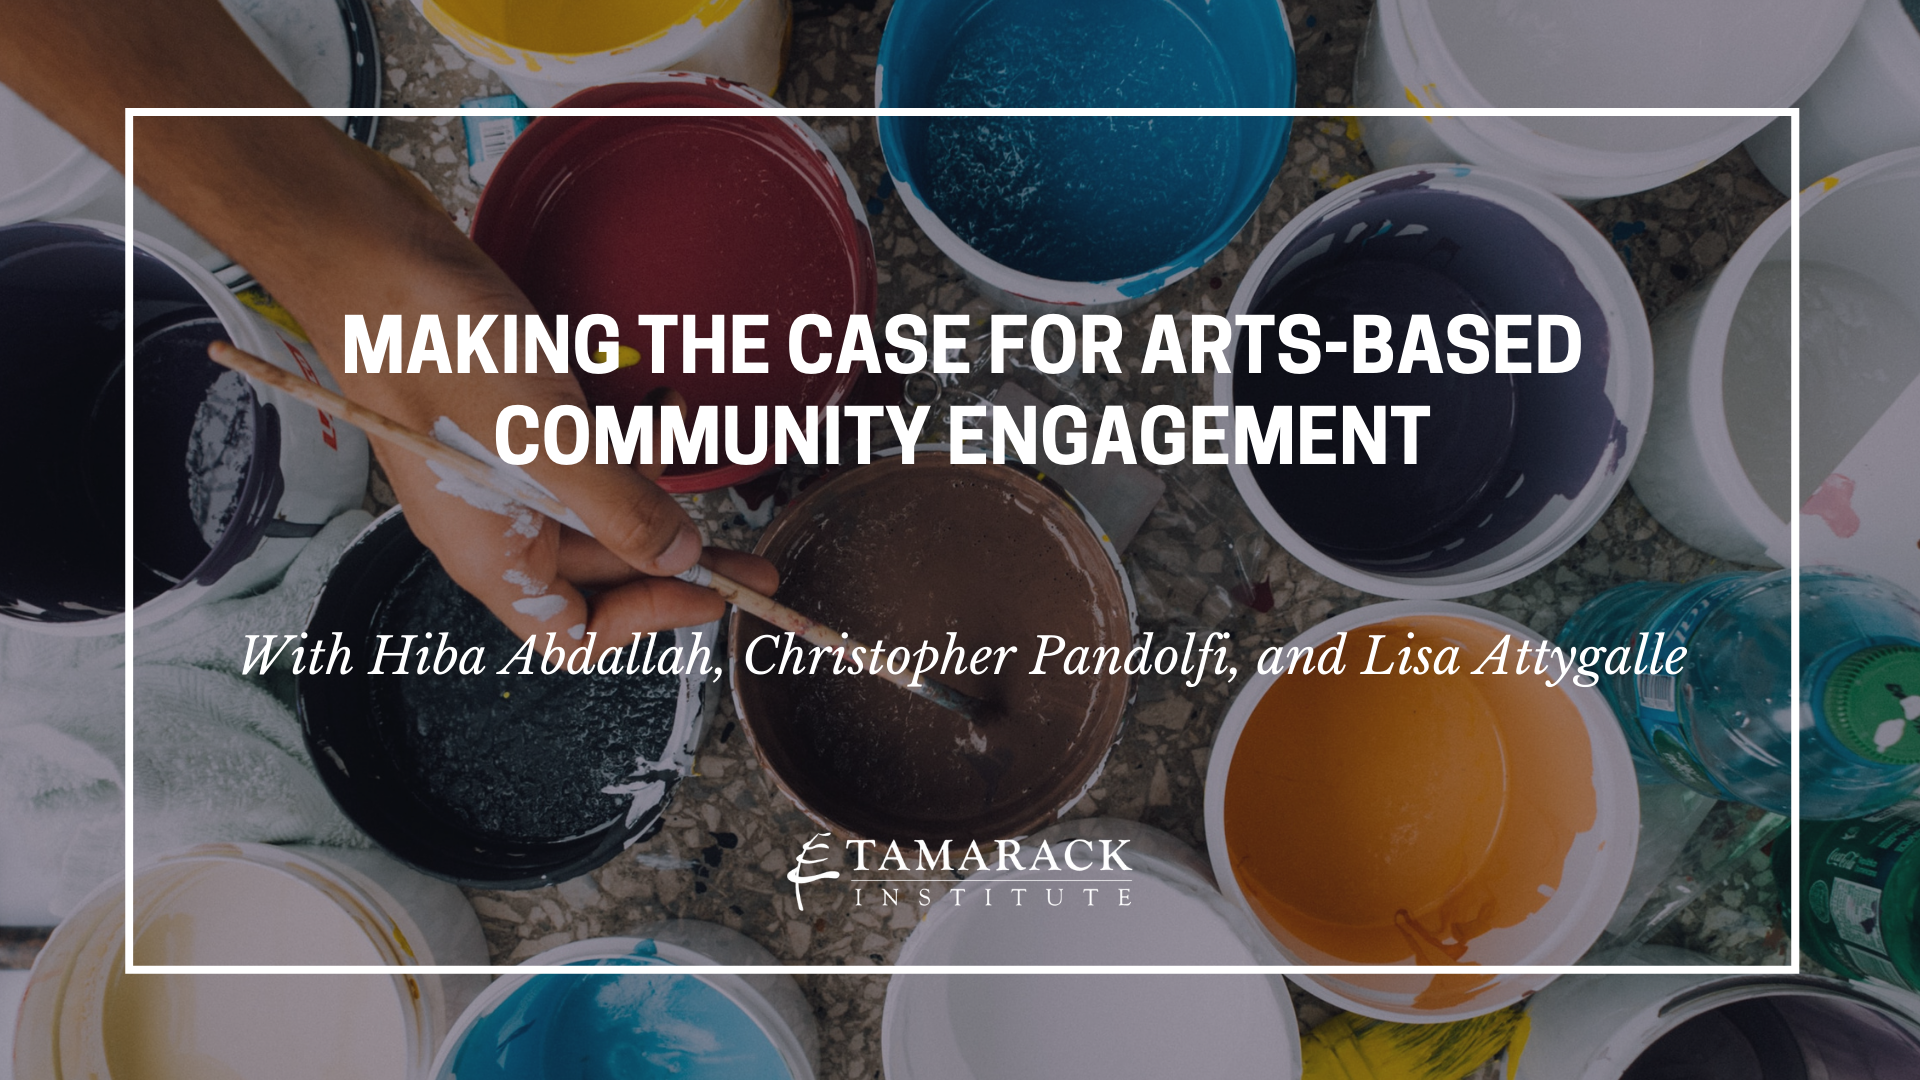 Copy of 2020 Webinar Making the Case for Arts-Based Community Engagement